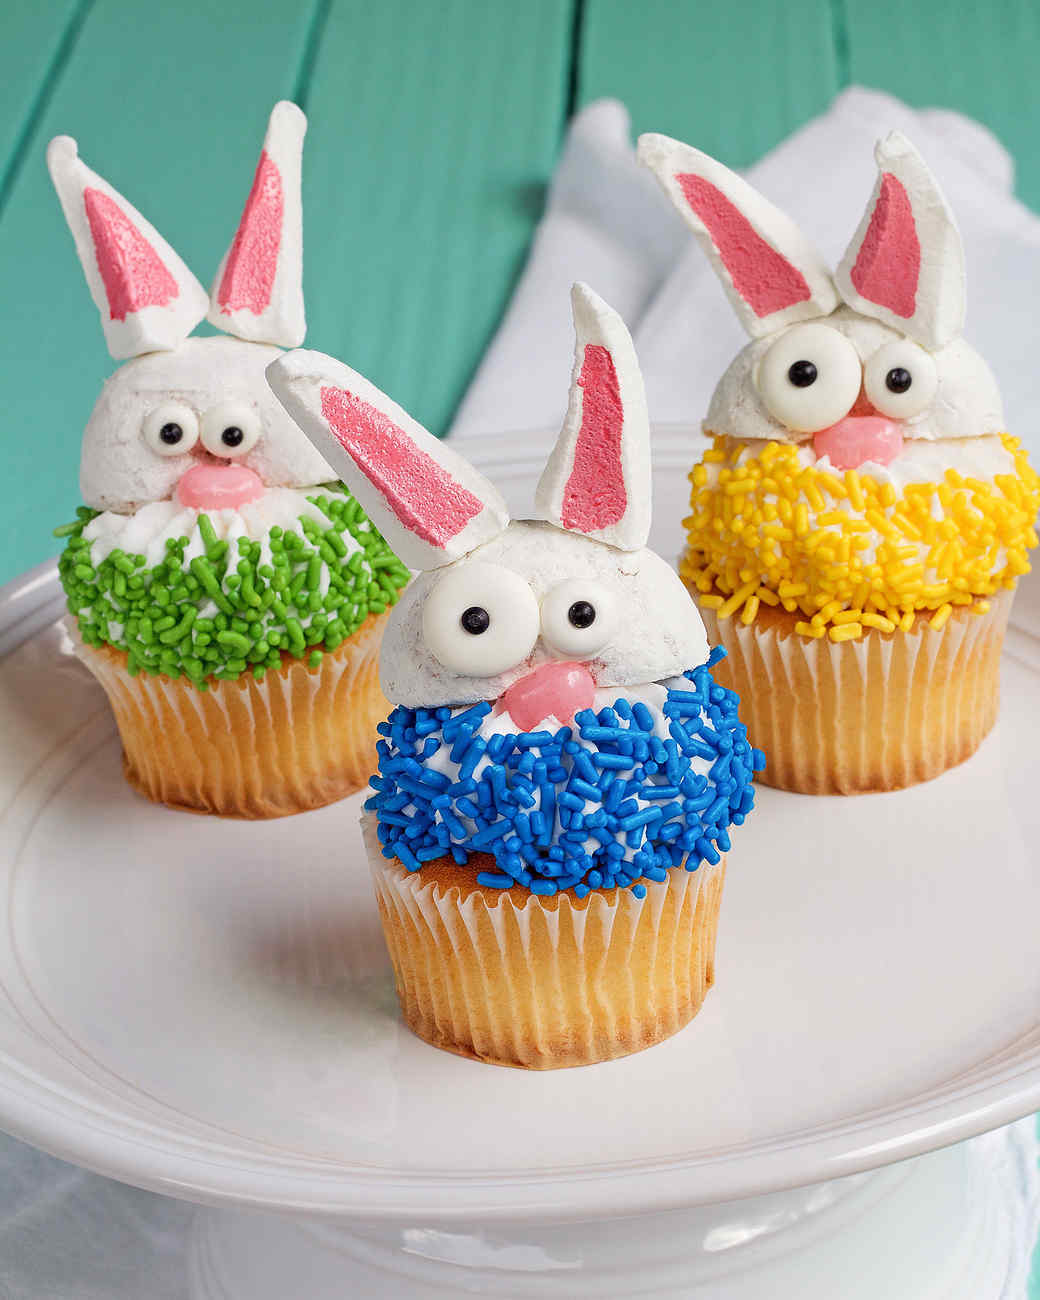 Simple, Cute Bunny Cupcakes